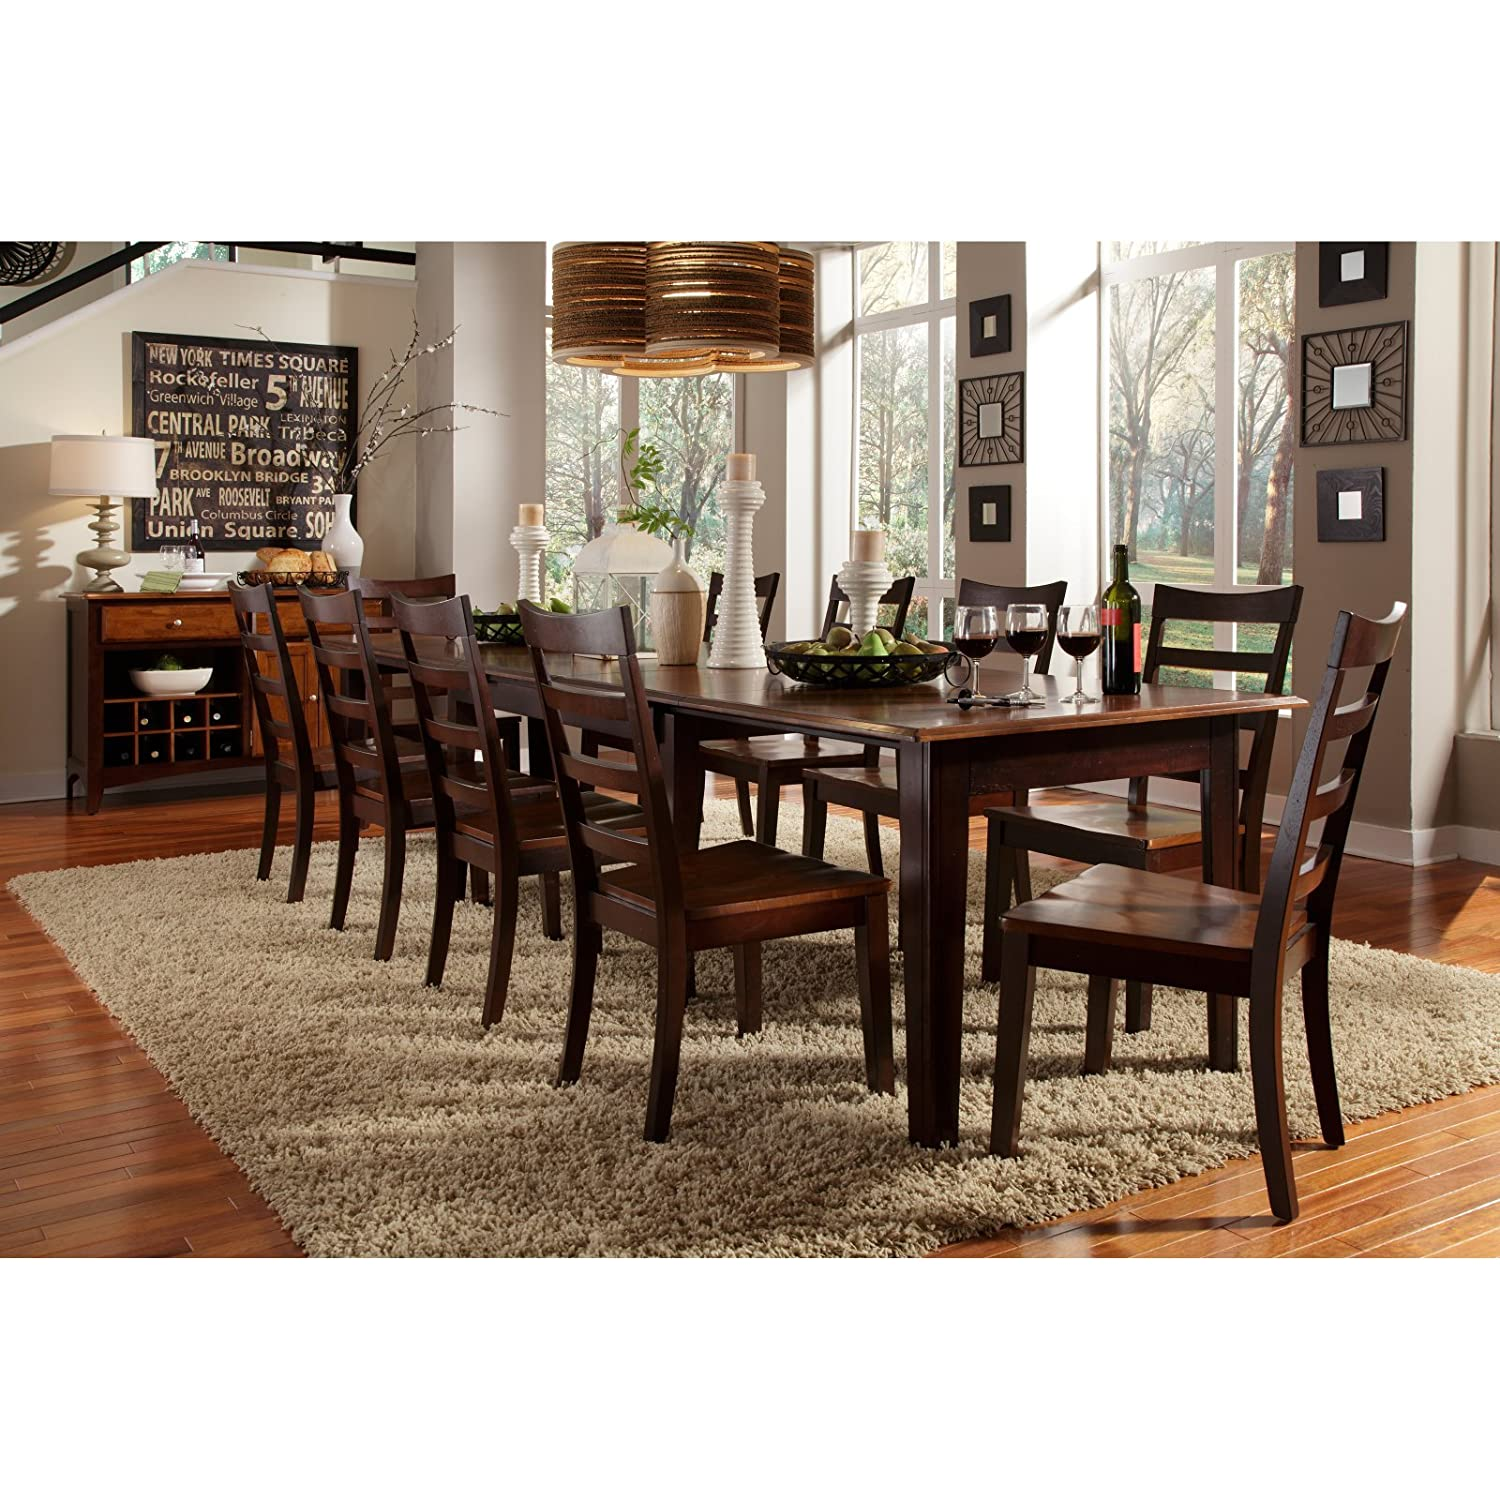 Amazon A America Bristol Point 132 Rectangular Dining Table With 3 24 Leaves Oak Espresso Kitchen